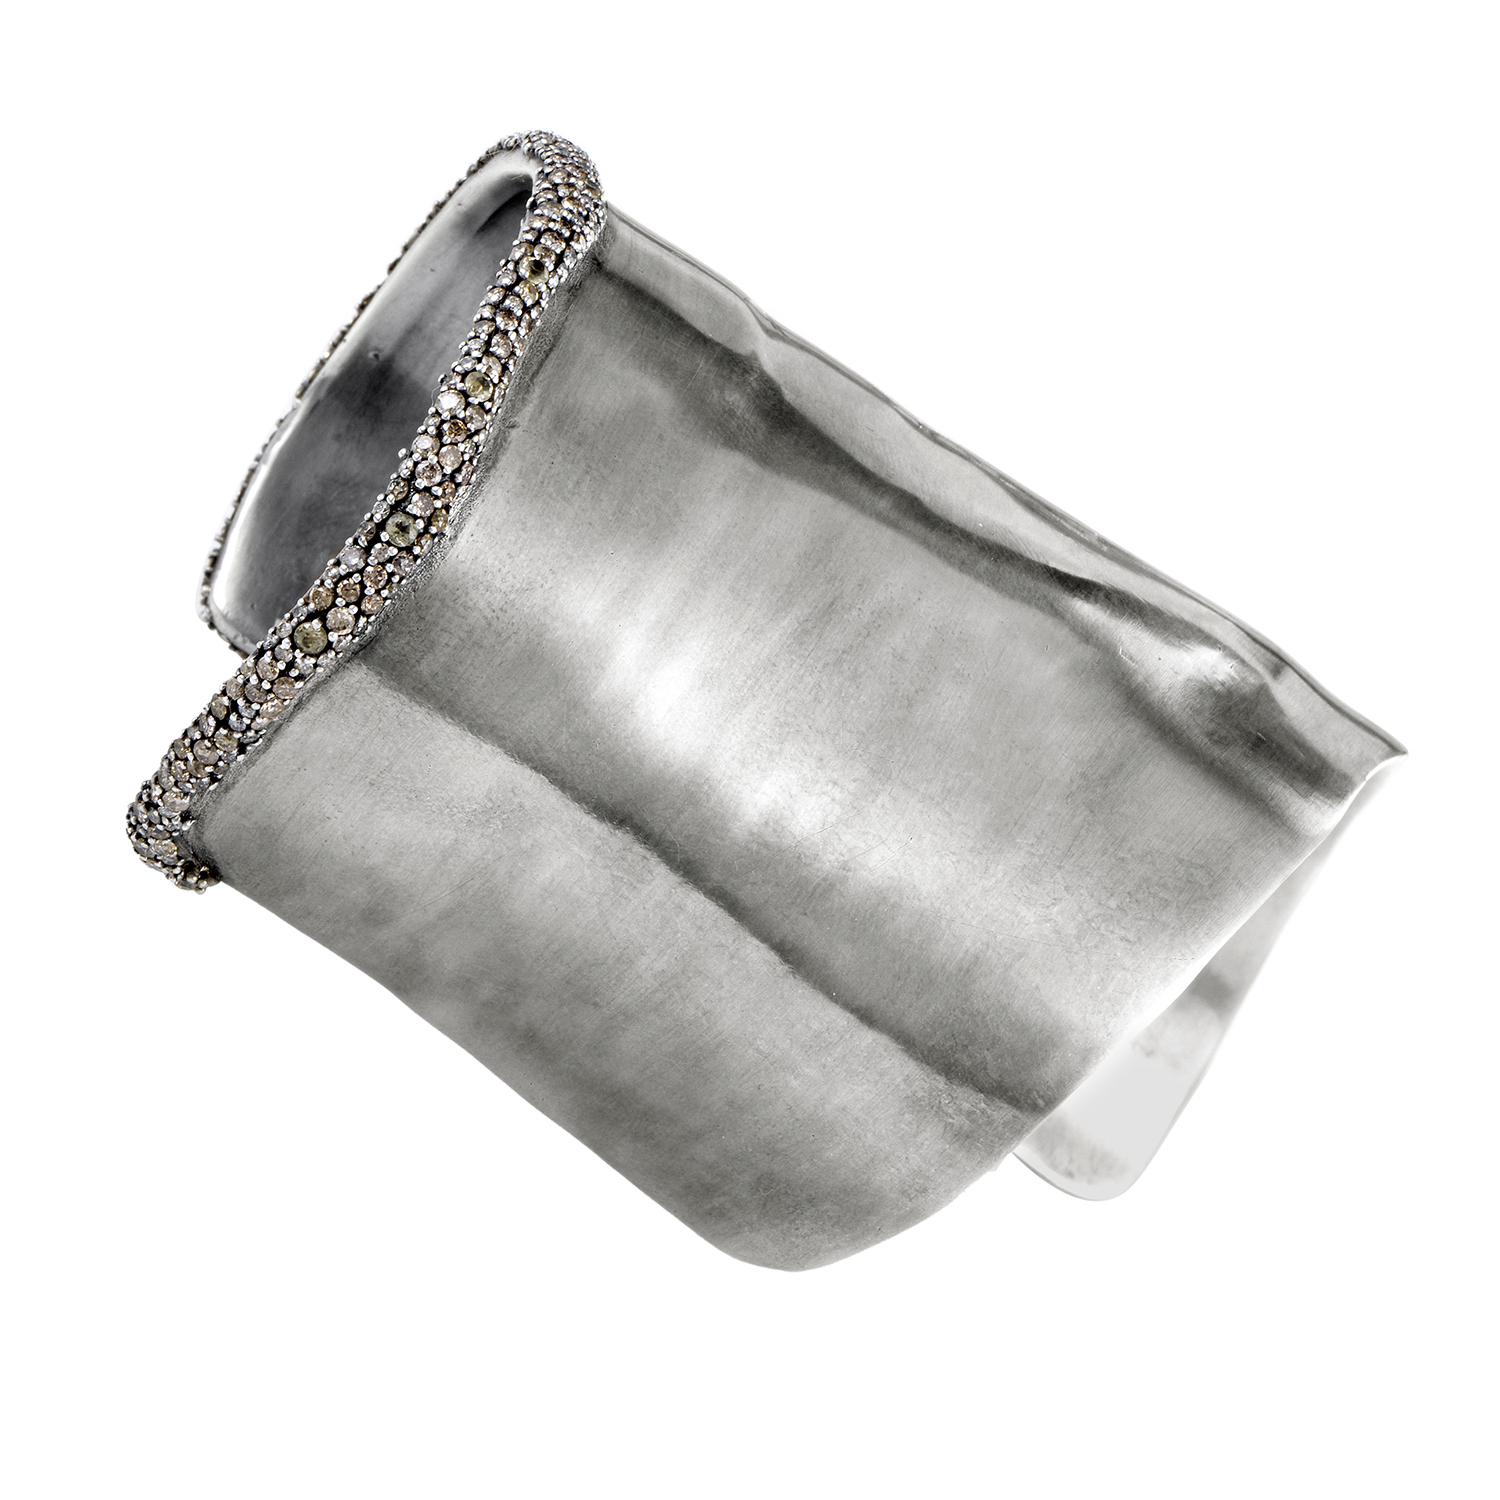 Marquis Women's Sterling Silver Brown Diamond Tapered Cuff Bangle